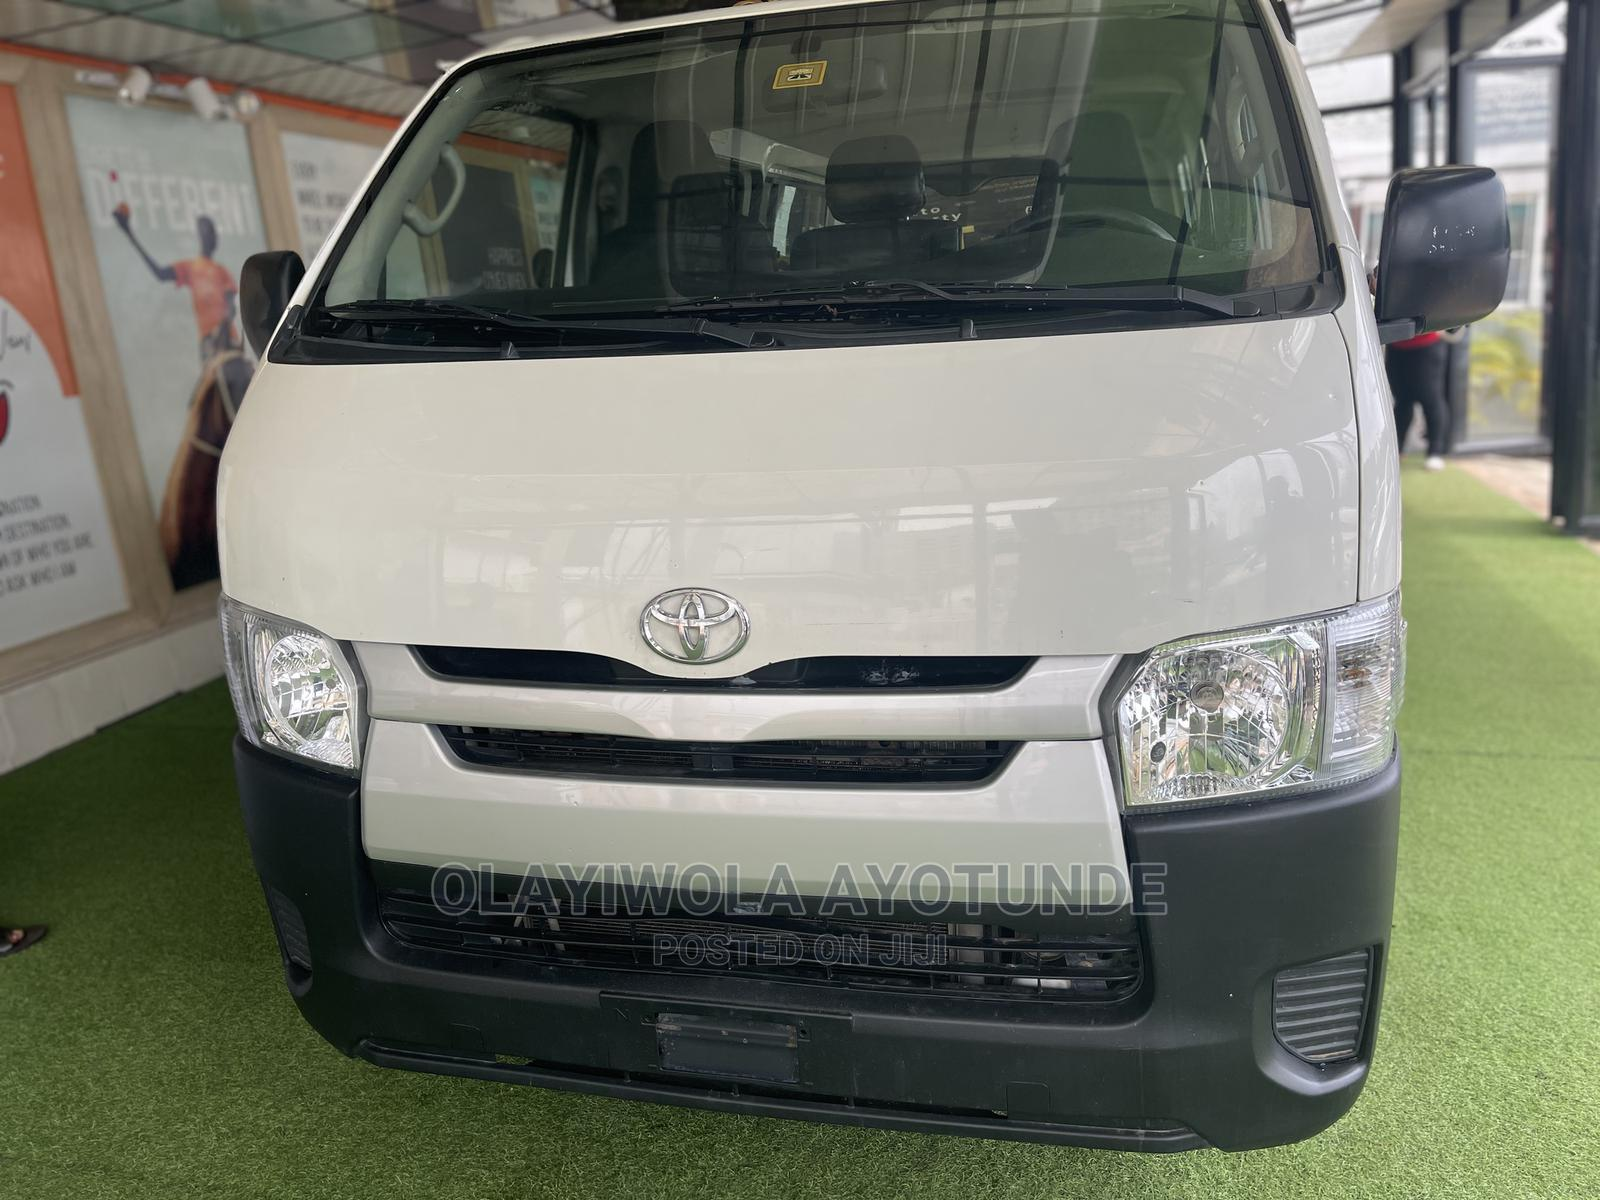 2010 Toyota Hiace(Foreign Used) | Buses & Microbuses for sale in Central Business District, Abuja (FCT) State, Nigeria